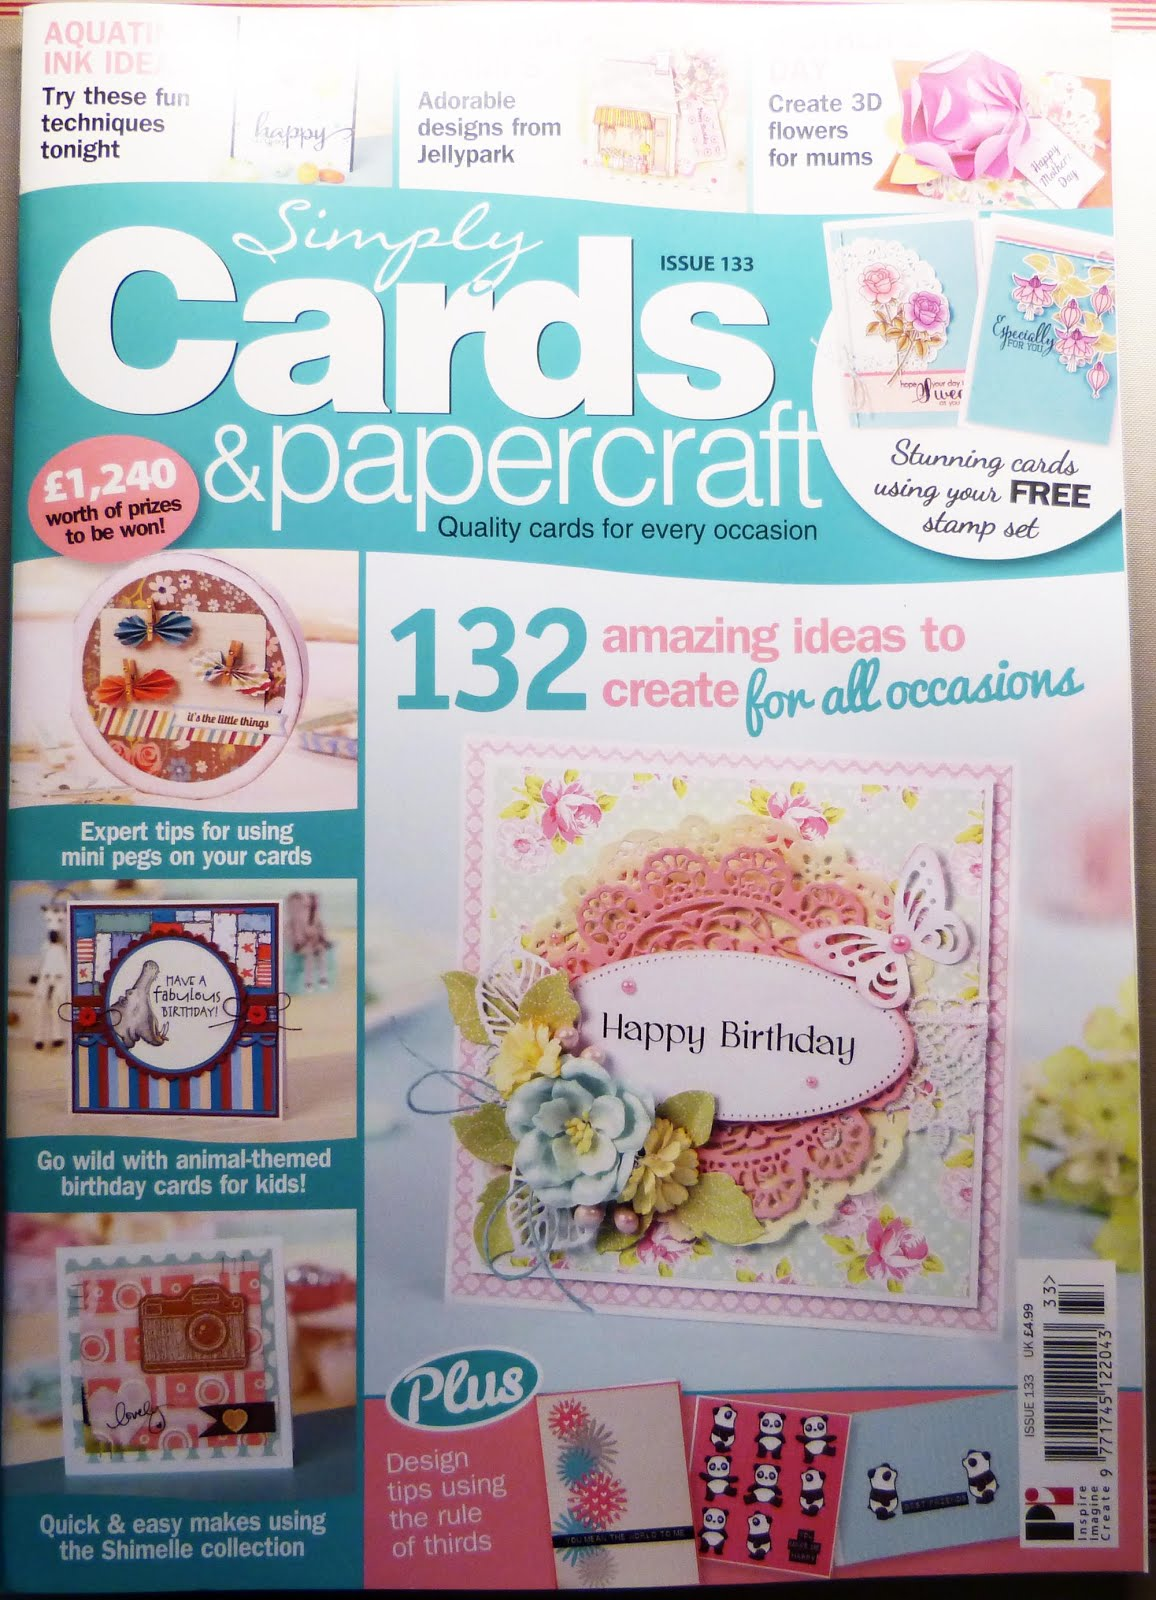 Published Simply Cards & Papercrafts Issue 133